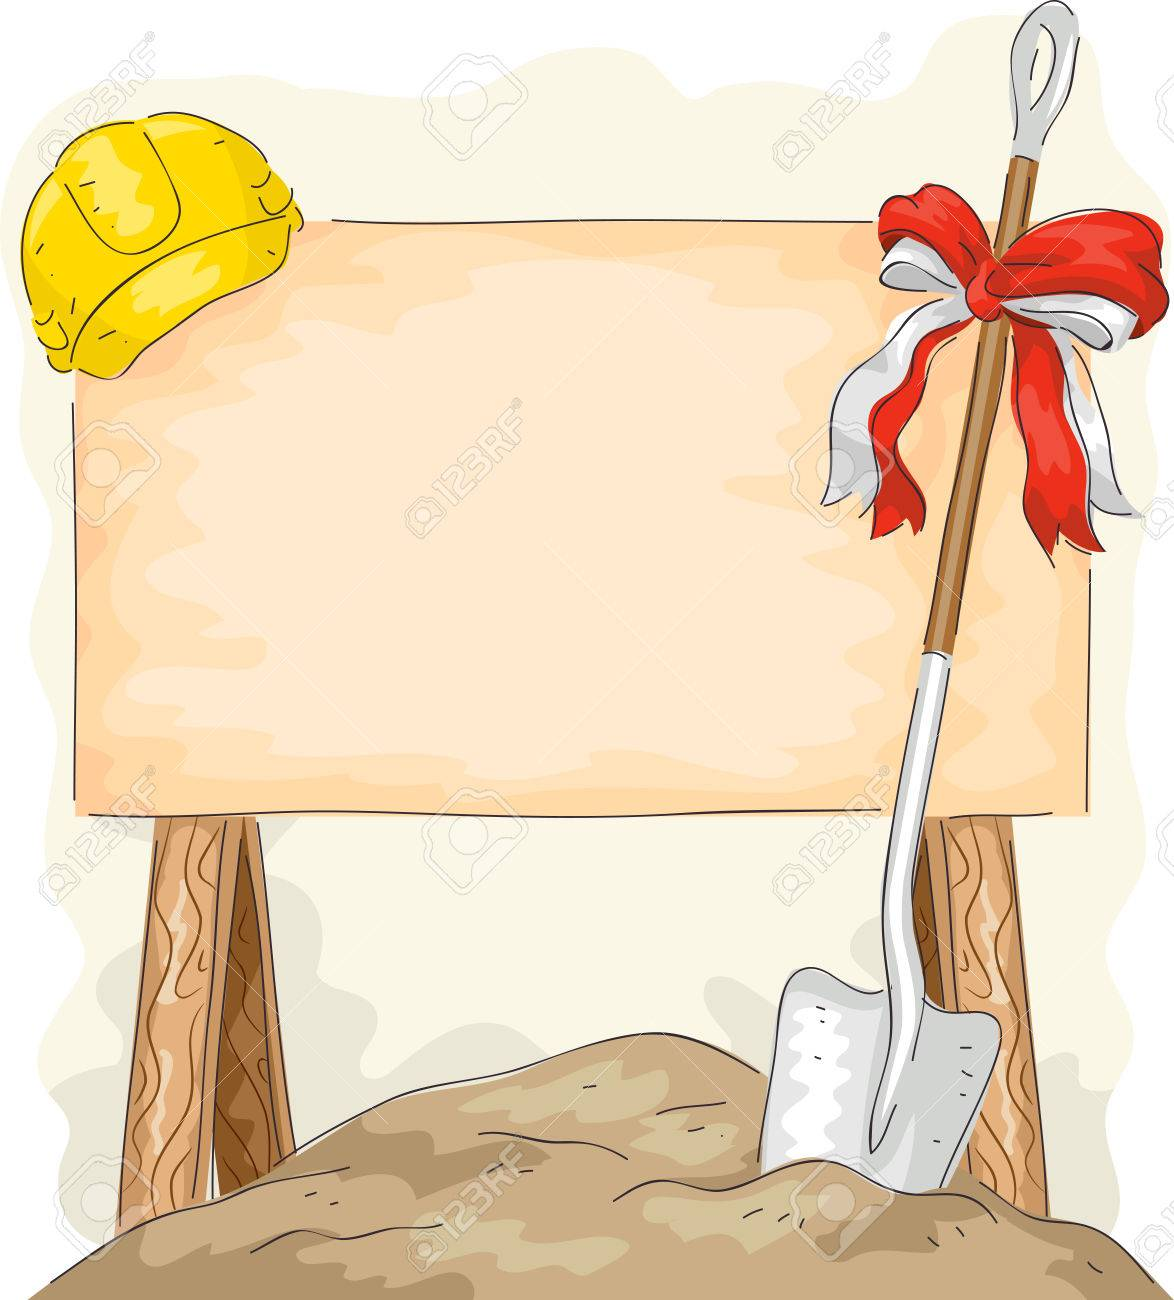 Illustration of a Shovel Placed Beside a Construction Sign - 57058580